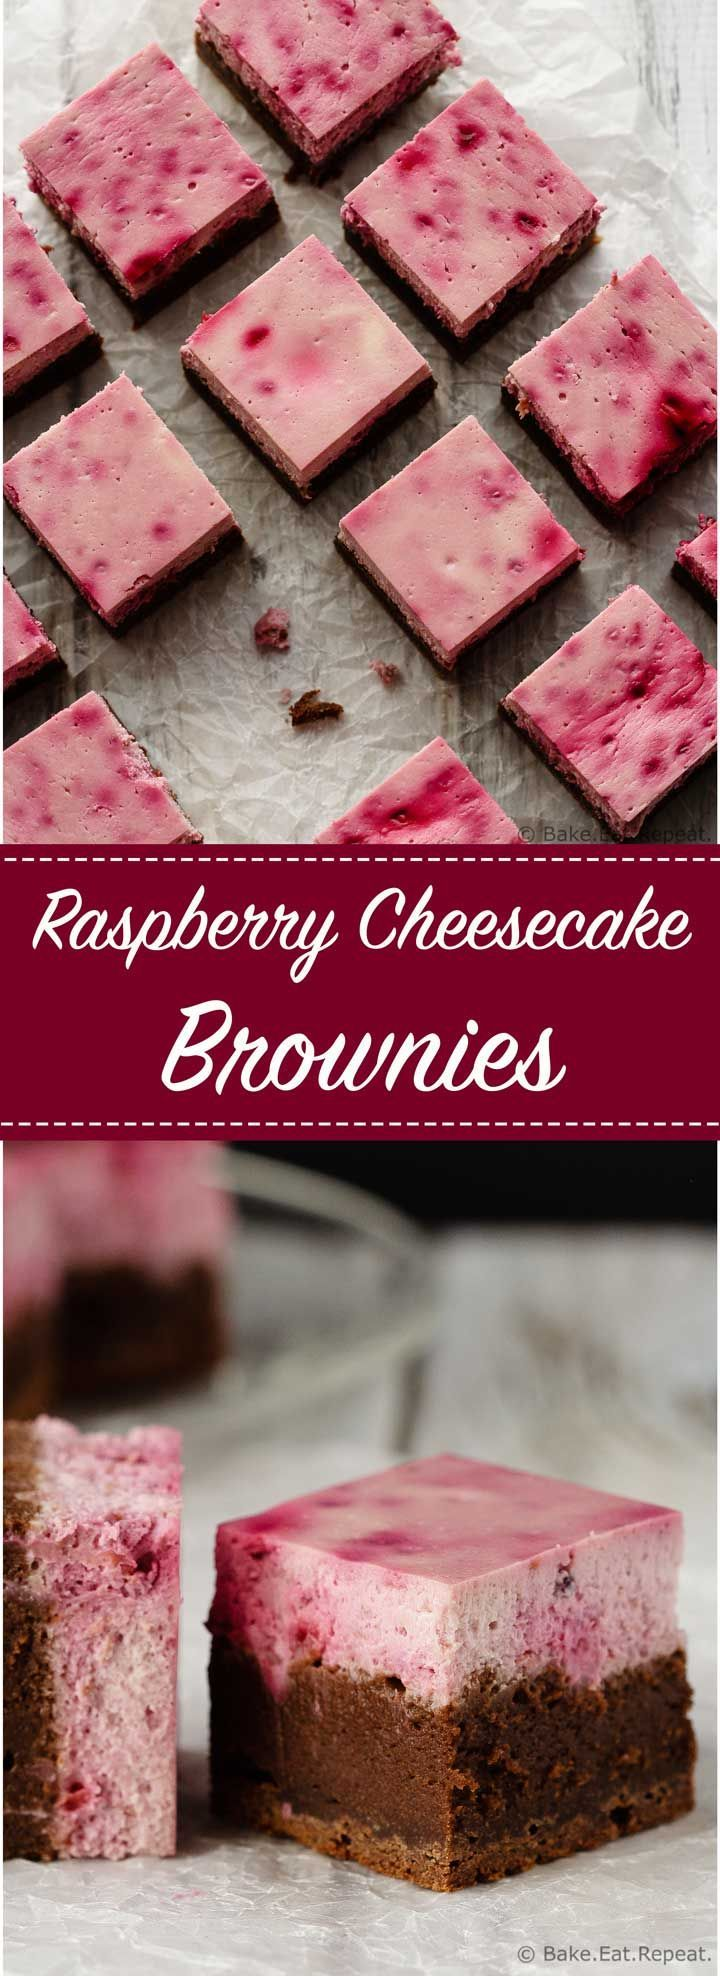 Raspberry Cheesecake Brownies - Easy to make raspberry cheesecake brownies that are perfect for Valentine's Day! Or for a special dessert. Or just because. These are amazin